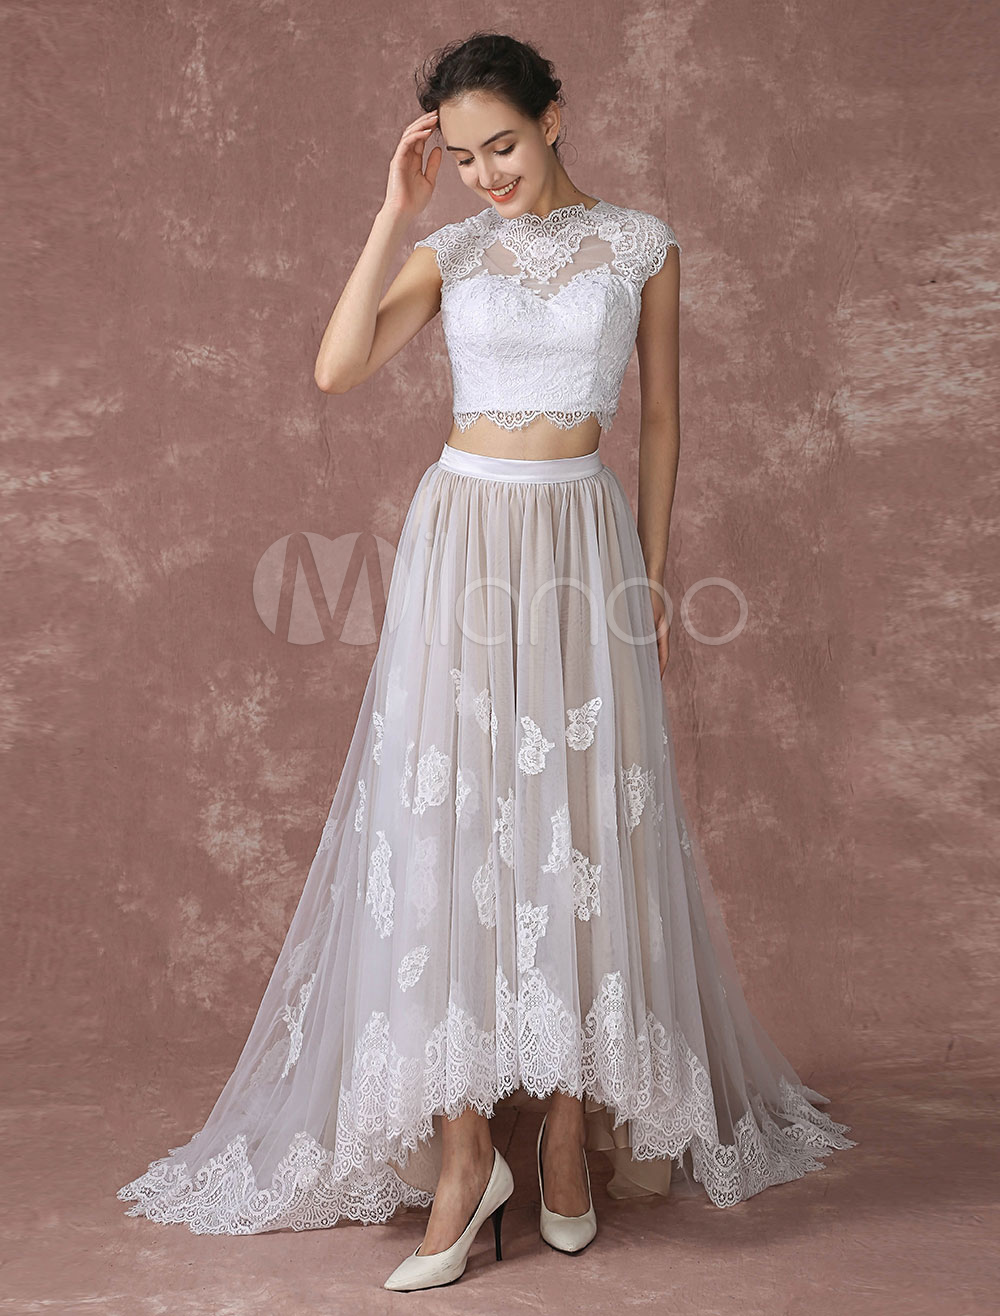 Crop top lace wedding dress high low tulle bridal gown for Best lace wedding dresses